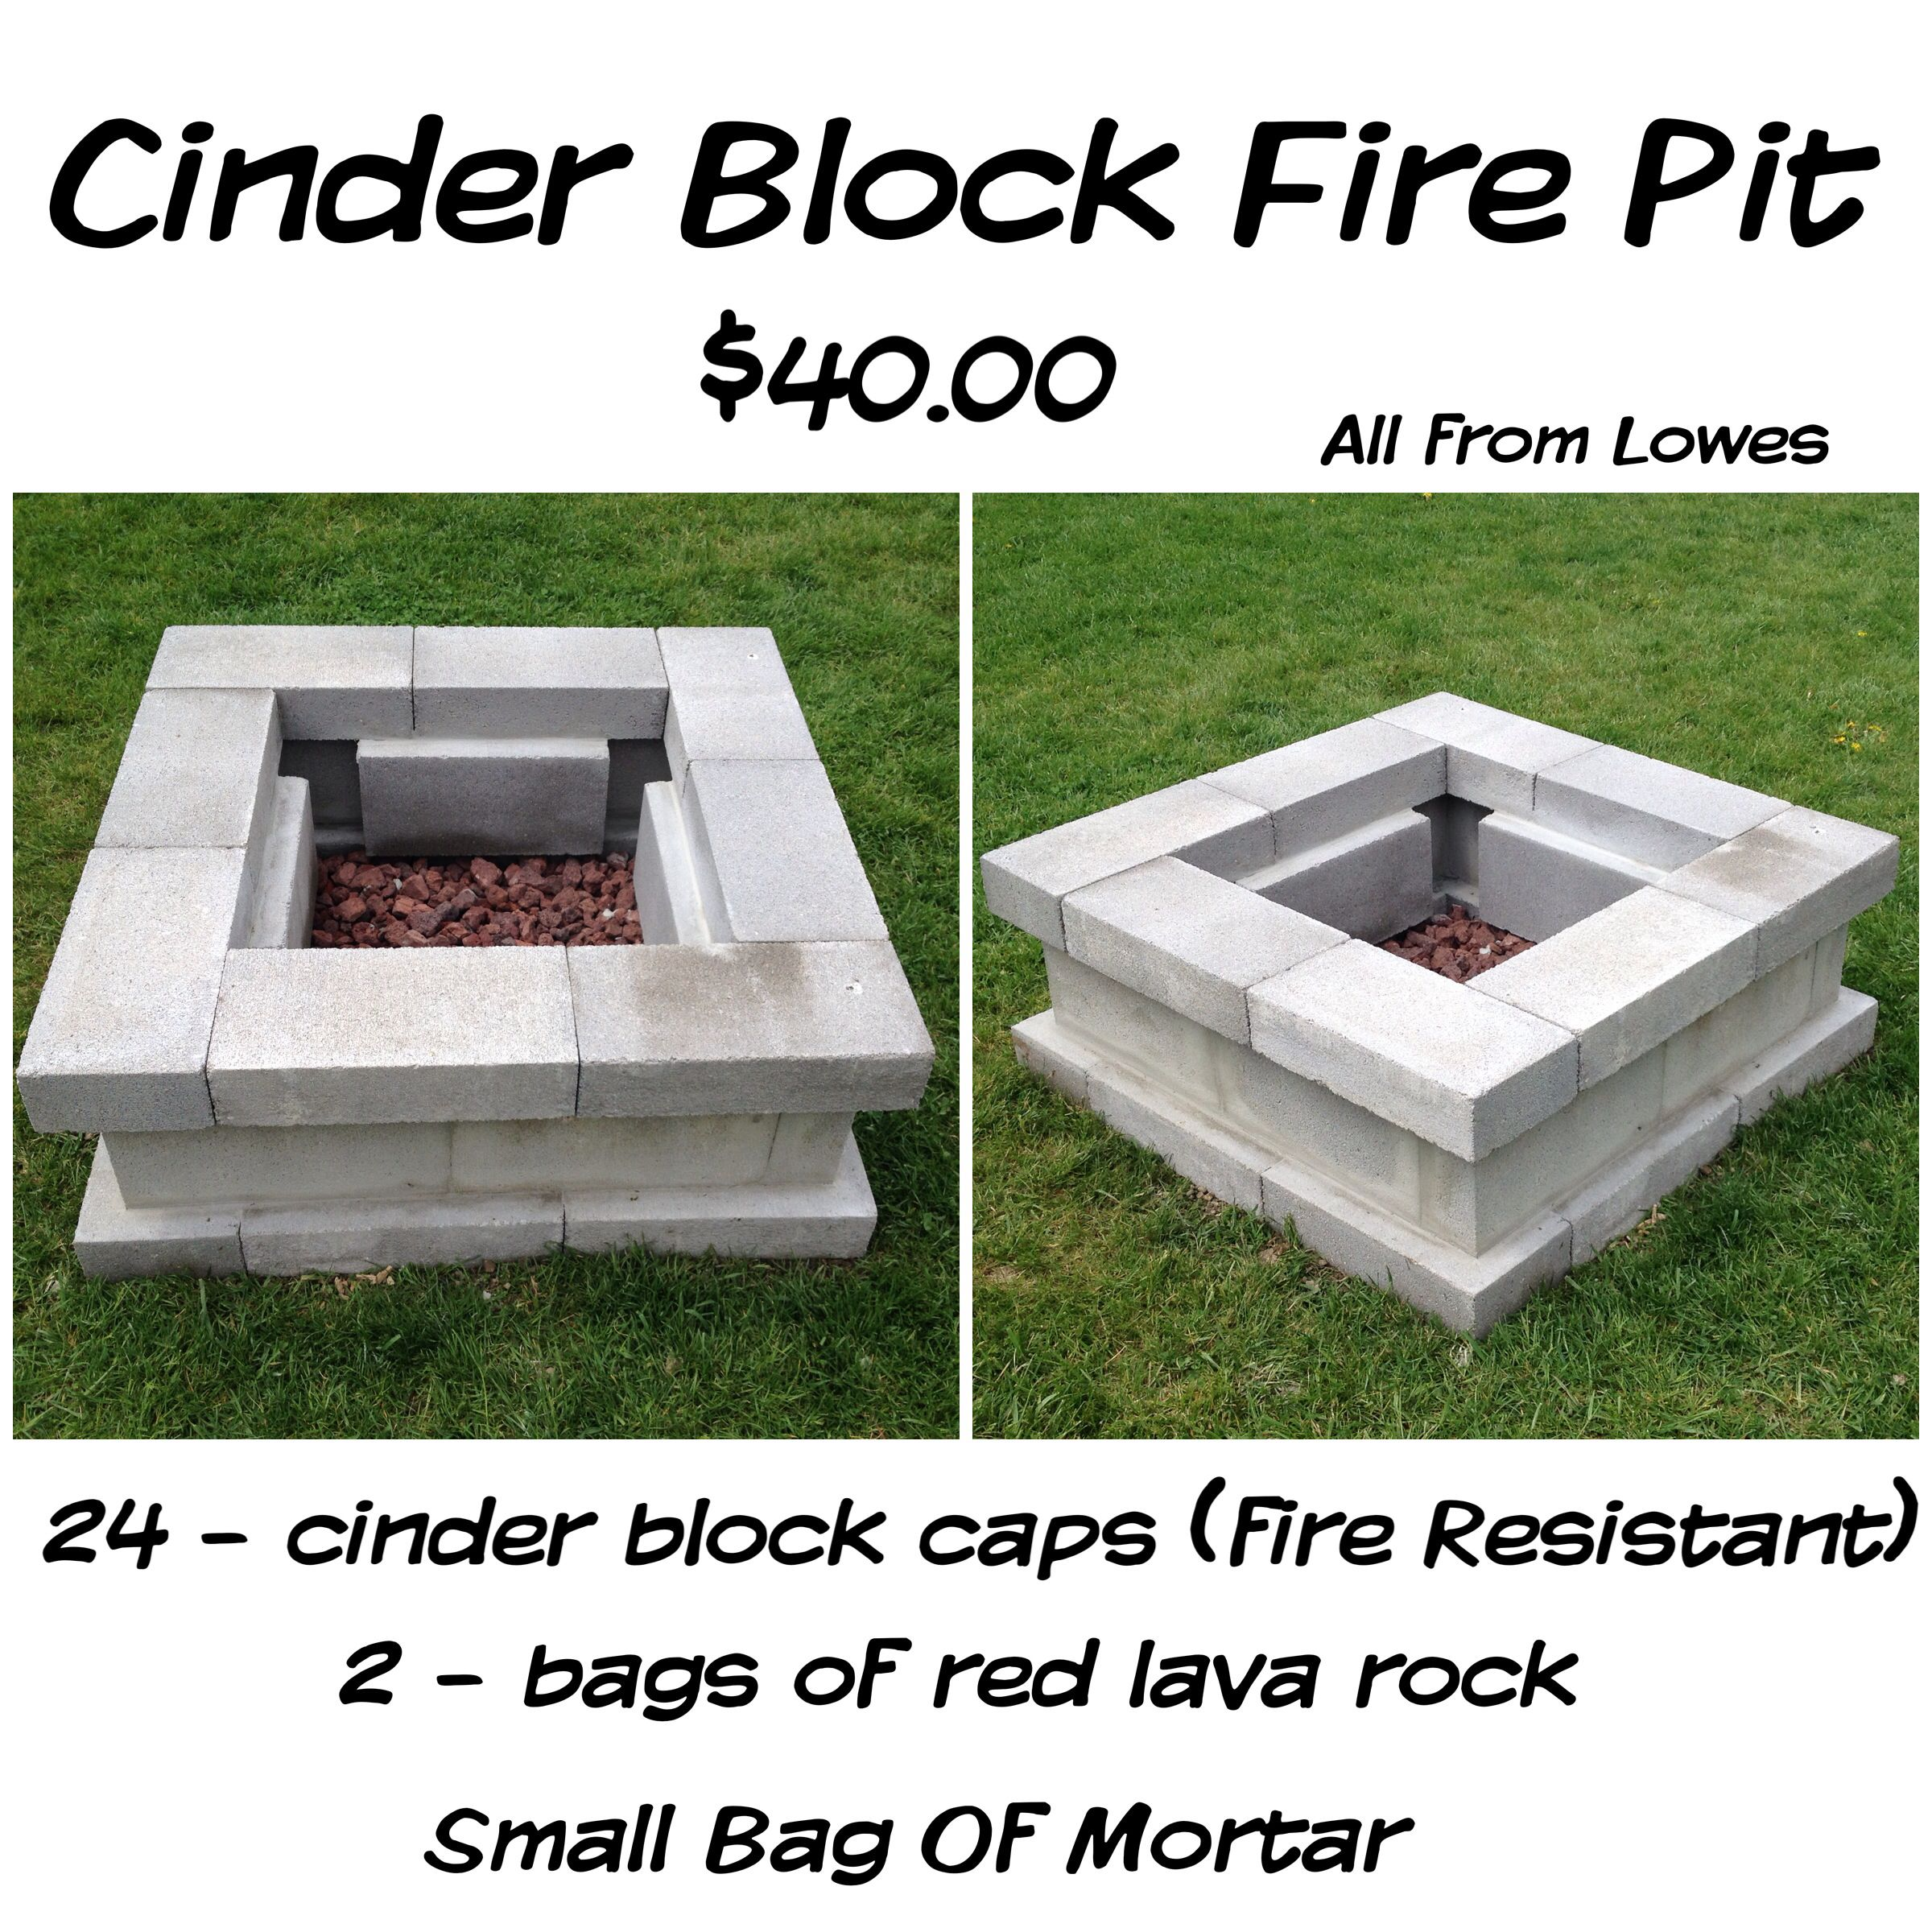 Cinder Block Fire Pit For Just 40 28 Caps Resistant Small Bag Of Mortar 2 Bags Lava Rock Wa La All Purchased From Lowes